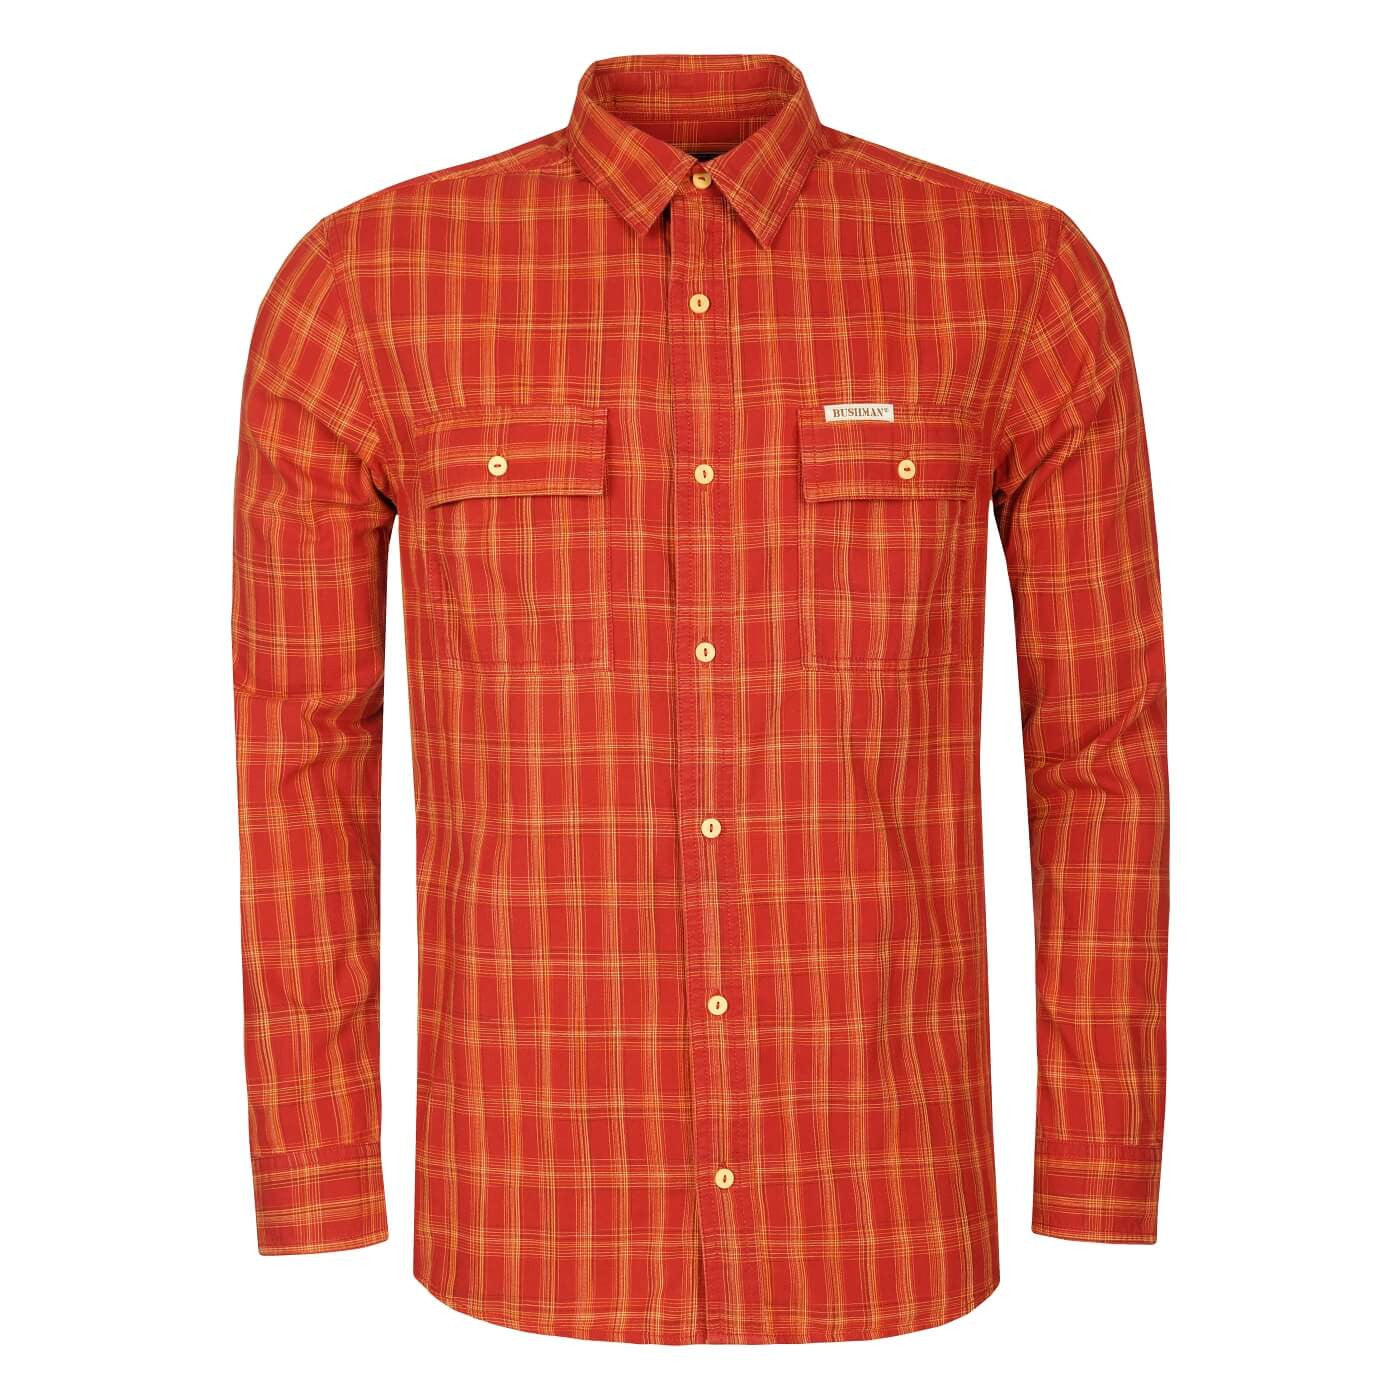 BUSHMANSHOP FERNDALE MEN'S RED GREY COTTON LONG SLEEVE SHIRT